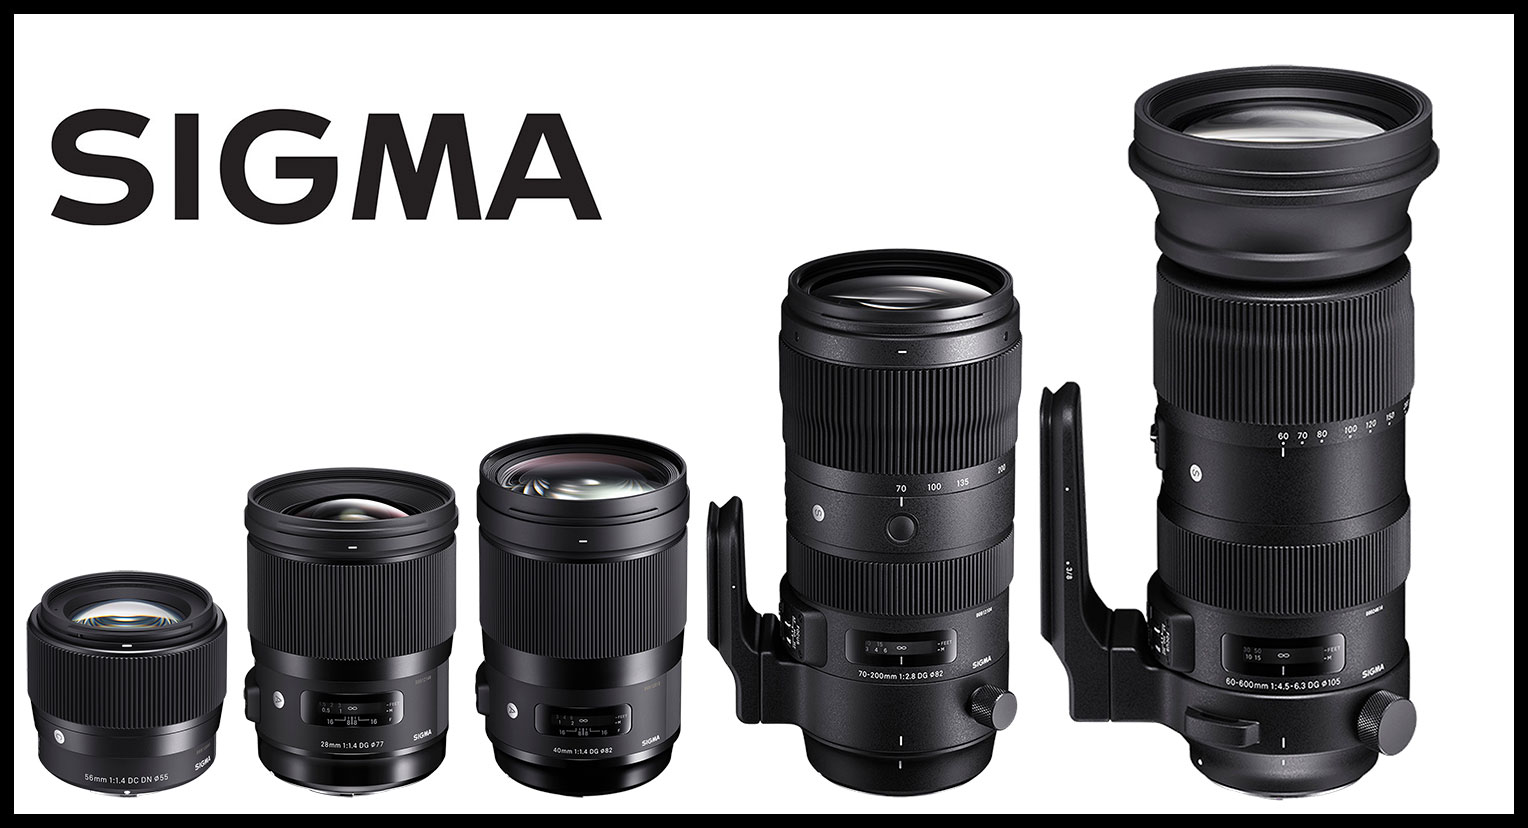 SIGMA NEWS: Five New Global Vision Lenses announced at Photokina 2018